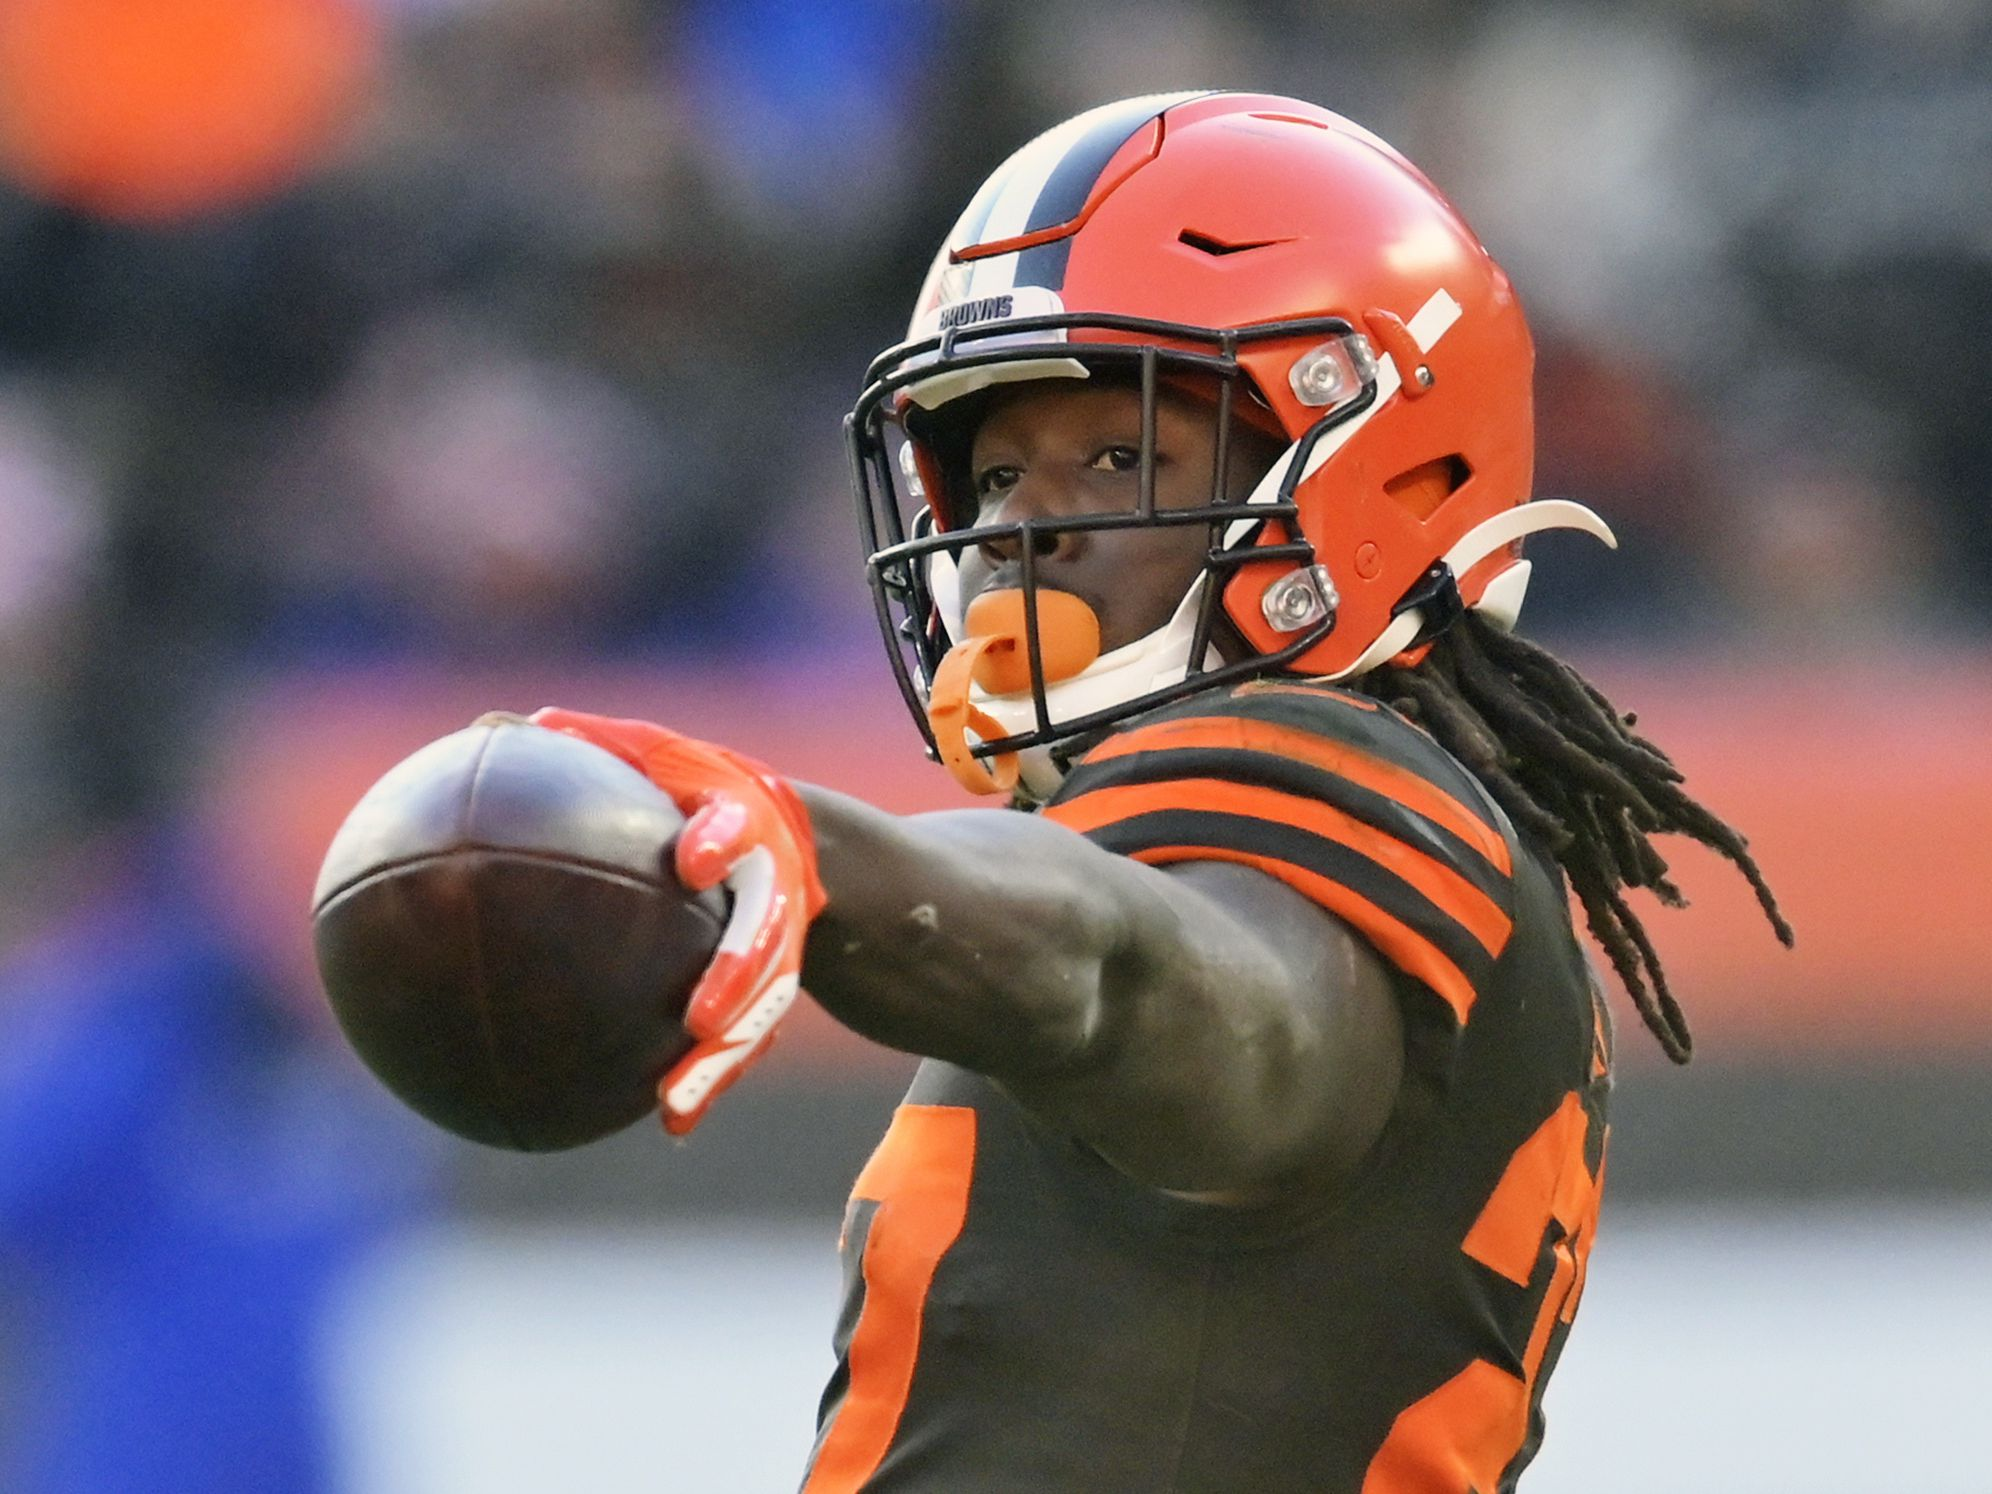 Browns place tender on Kareem Hunt, near deal with TE Hooper